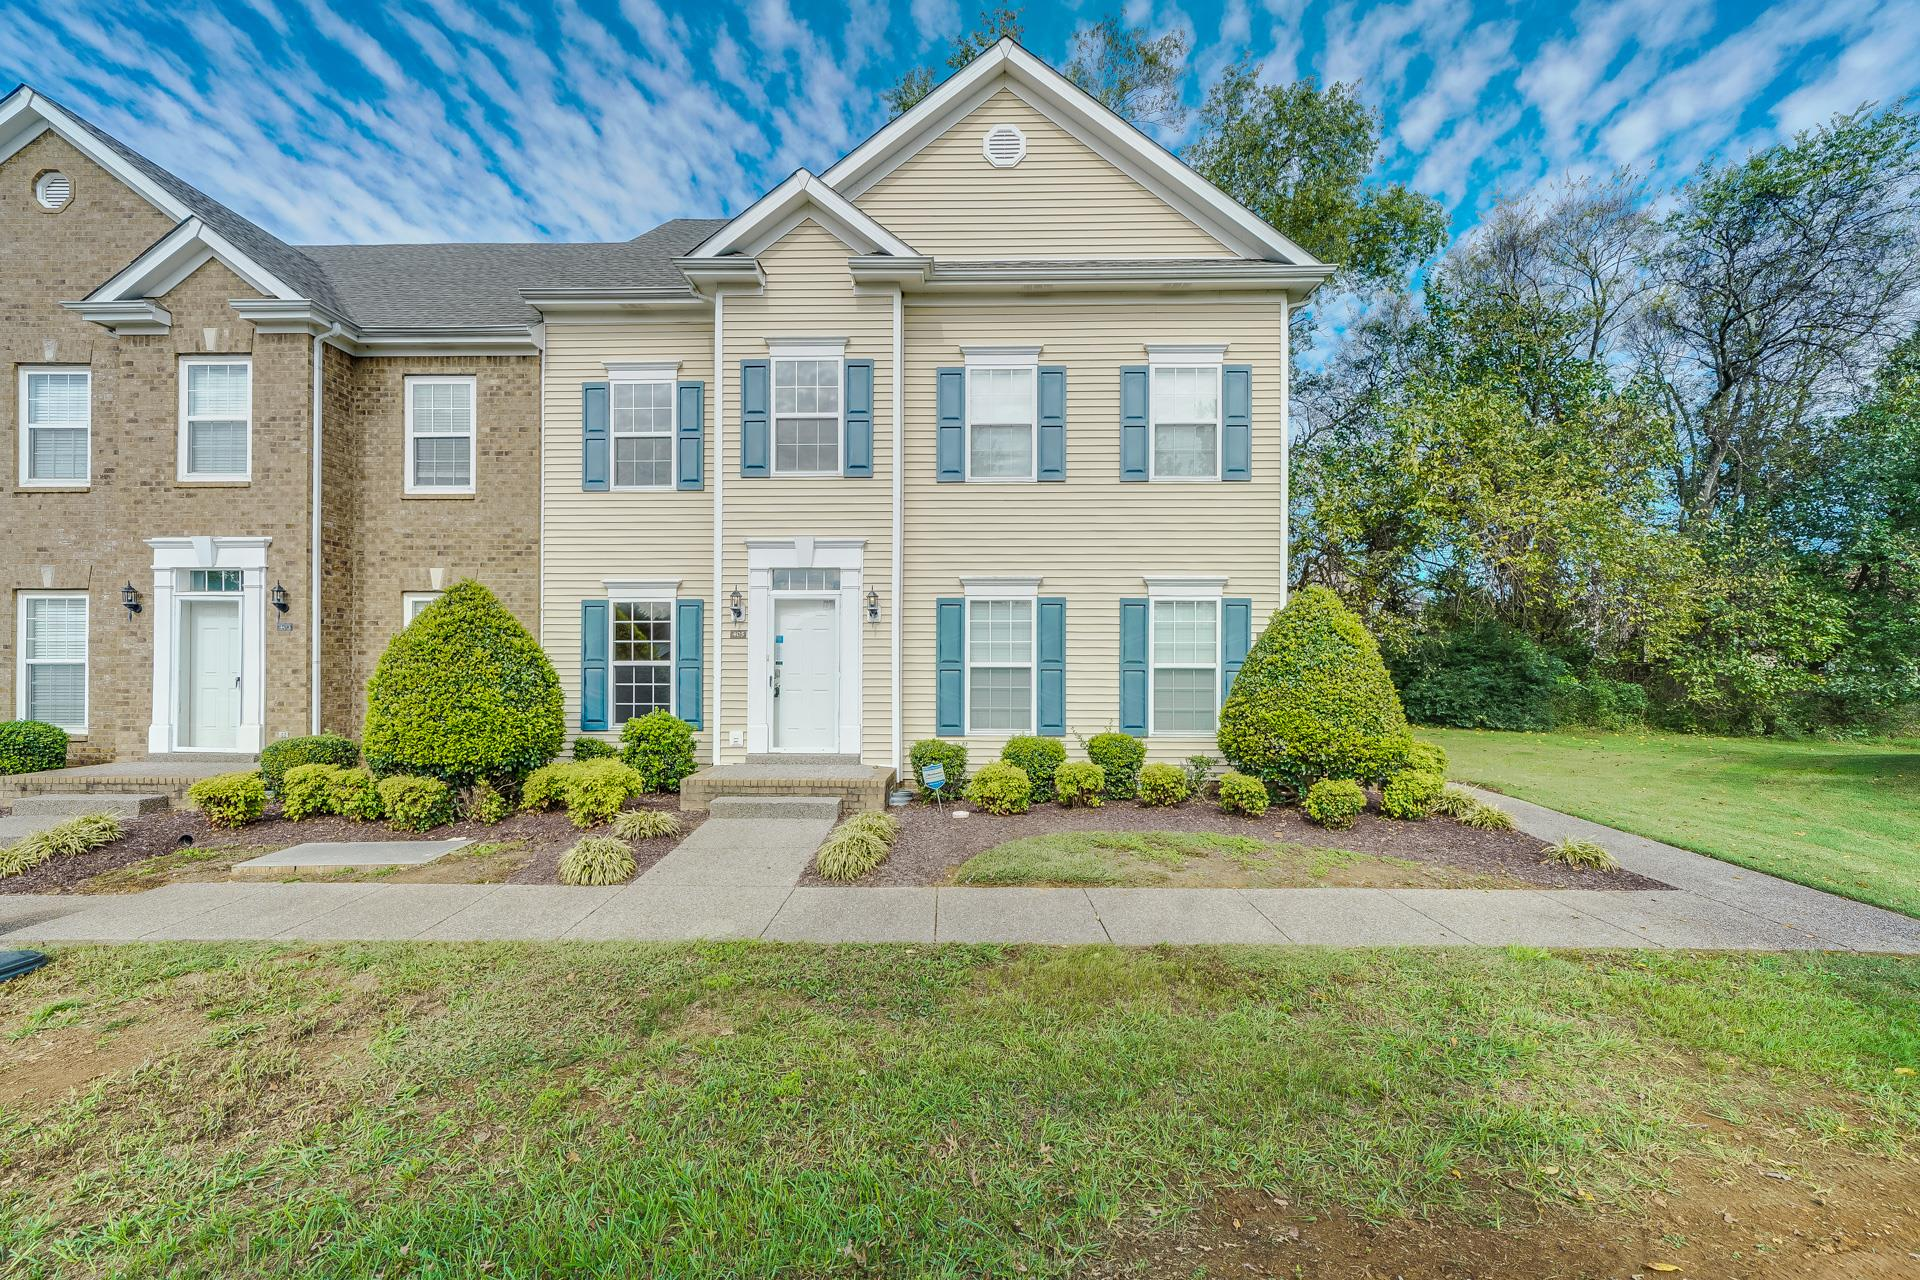 405 Newport Meadows Cir, Thompsons Station, TN 37179